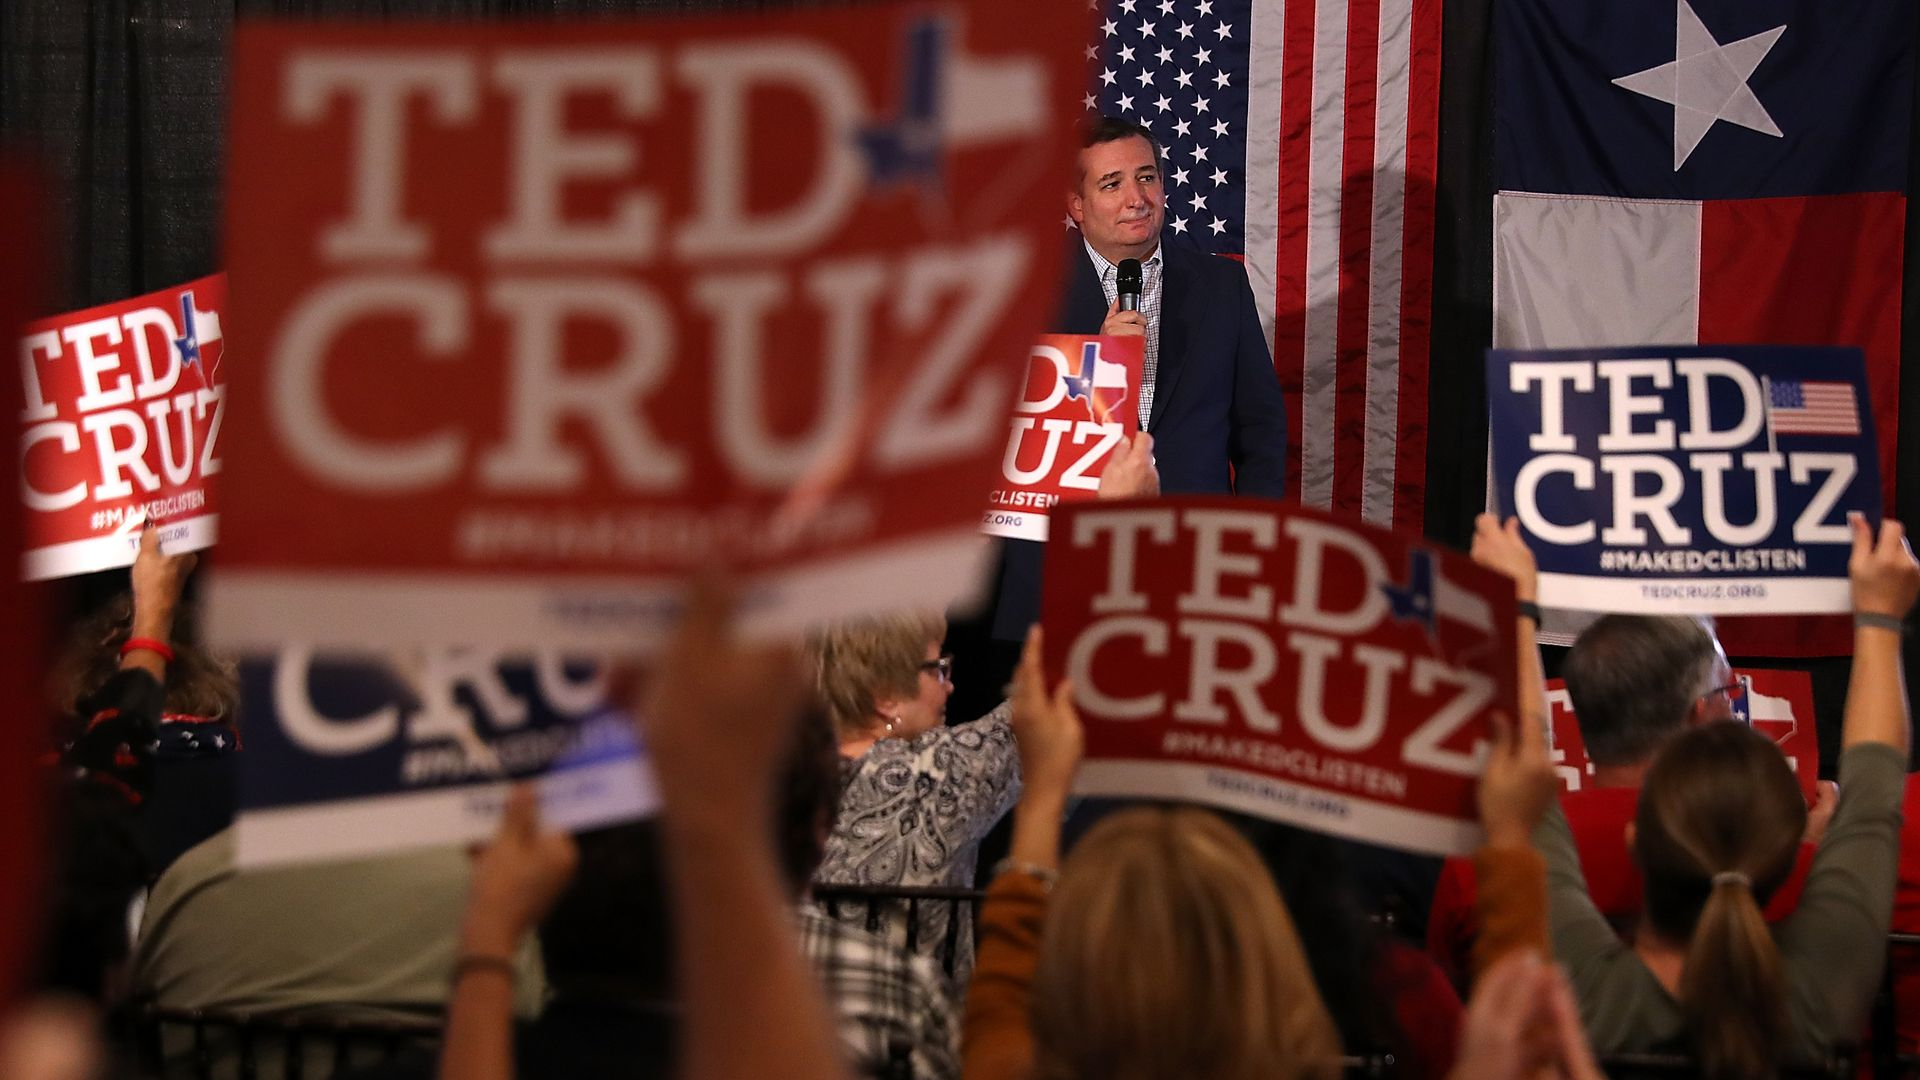 Ted Cruz standing on stage at a rally in Texas, with a bunch of people holding Ted Cruz signs